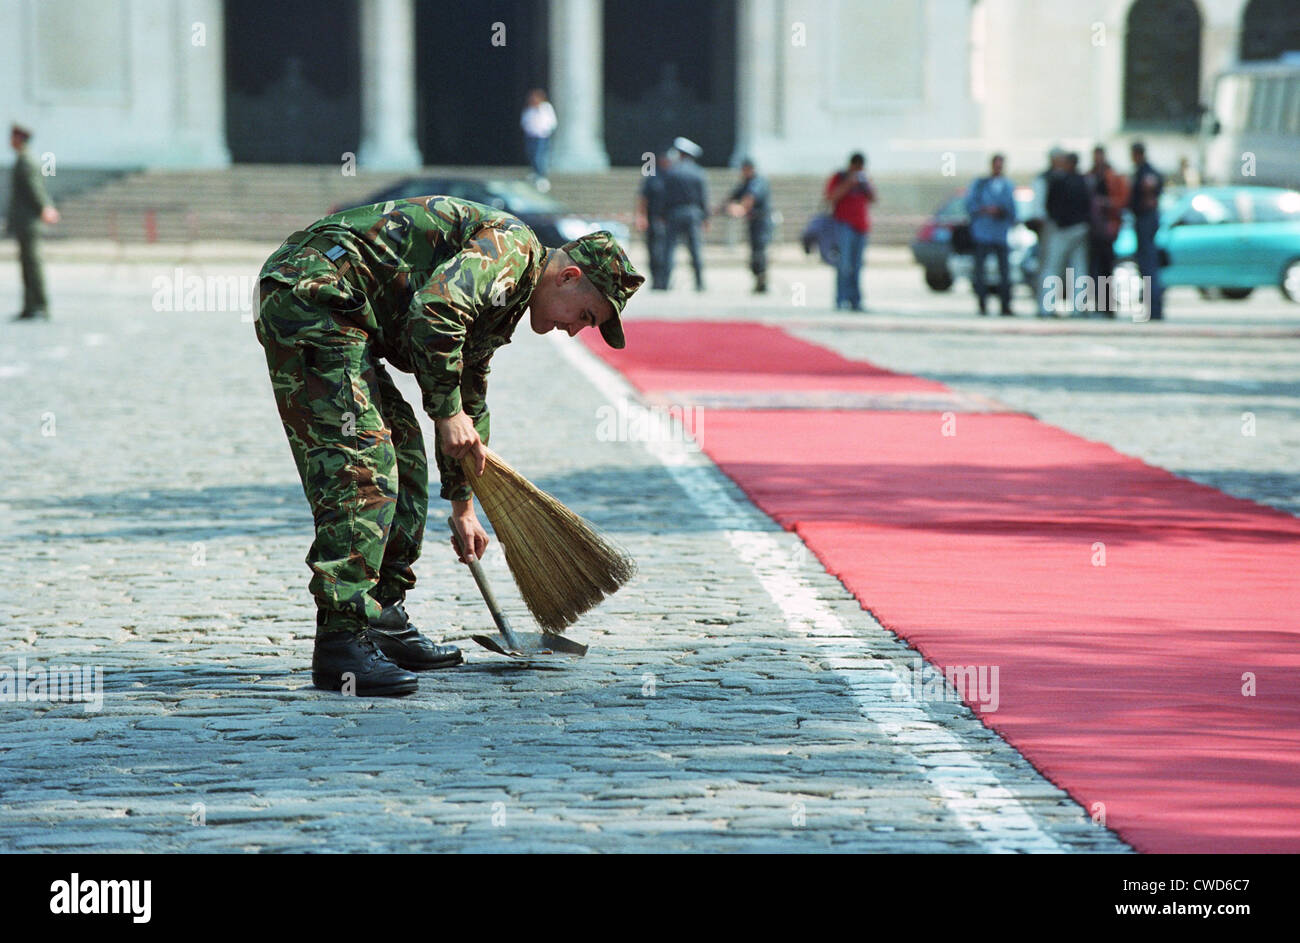 Bulgarian soldier prepares before receiving a delegation, Sofia - Stock Image